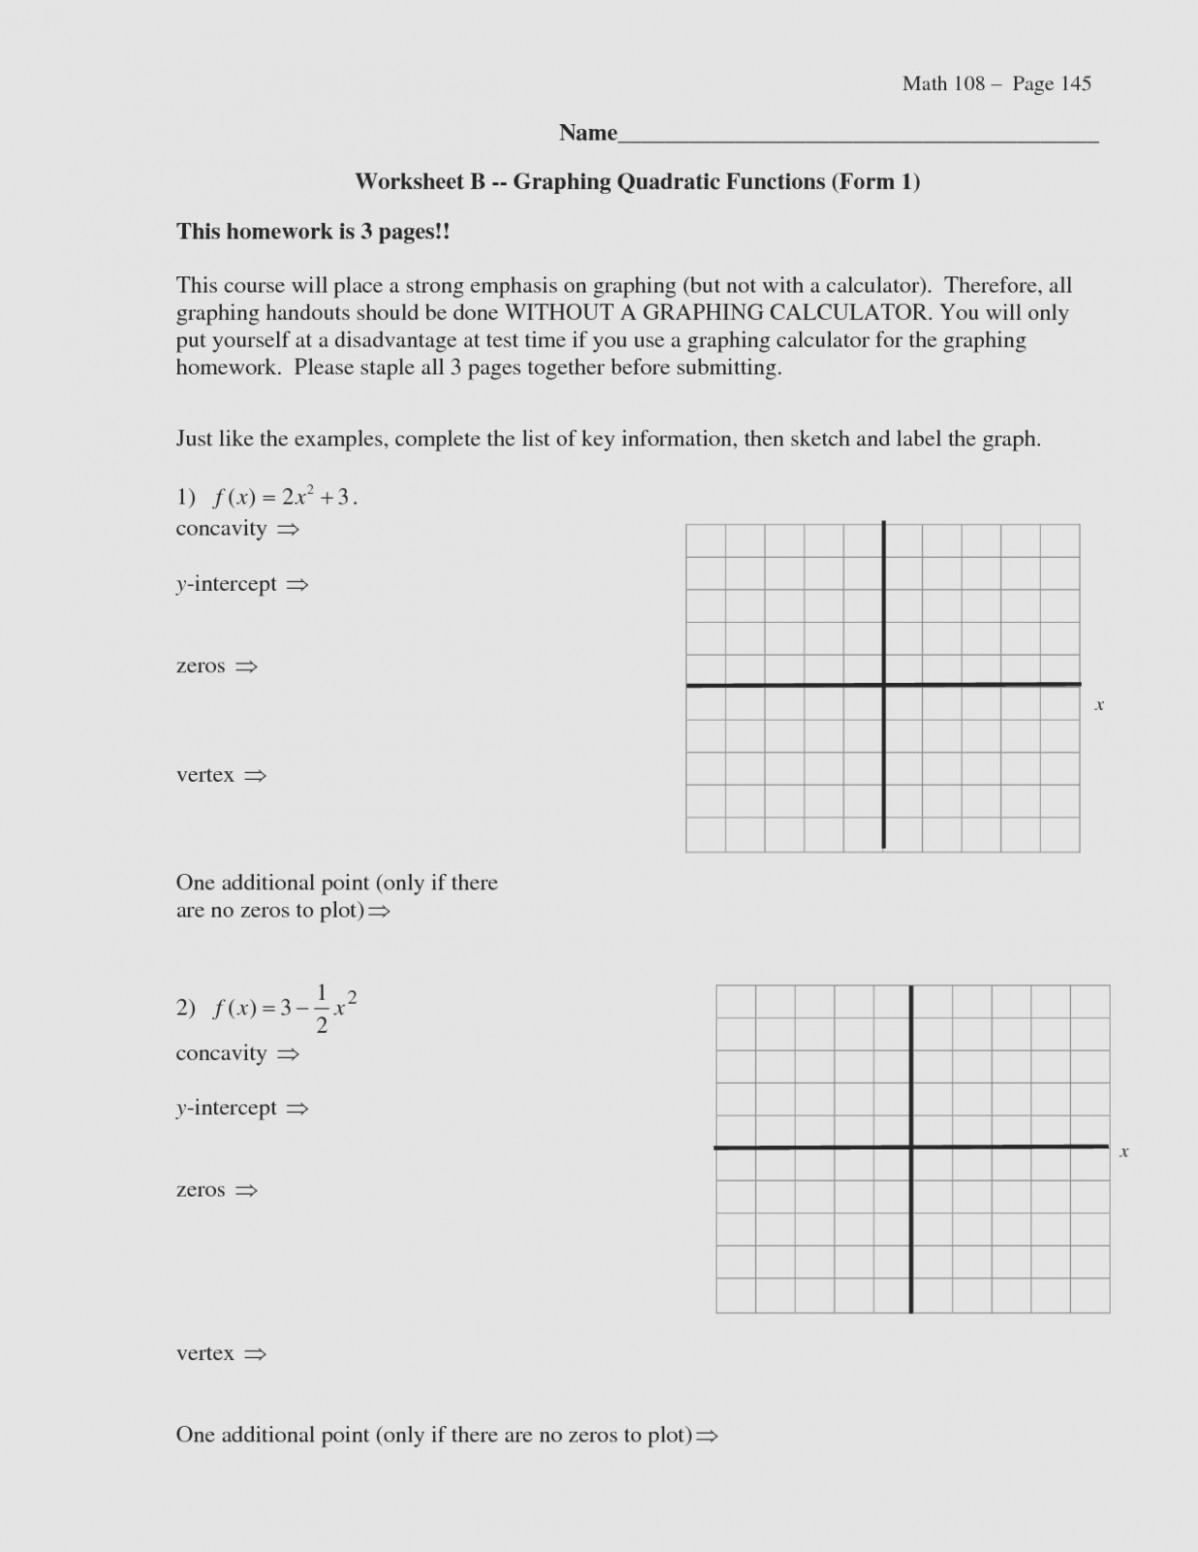 Graphing Quadratics Worksheet With Answers